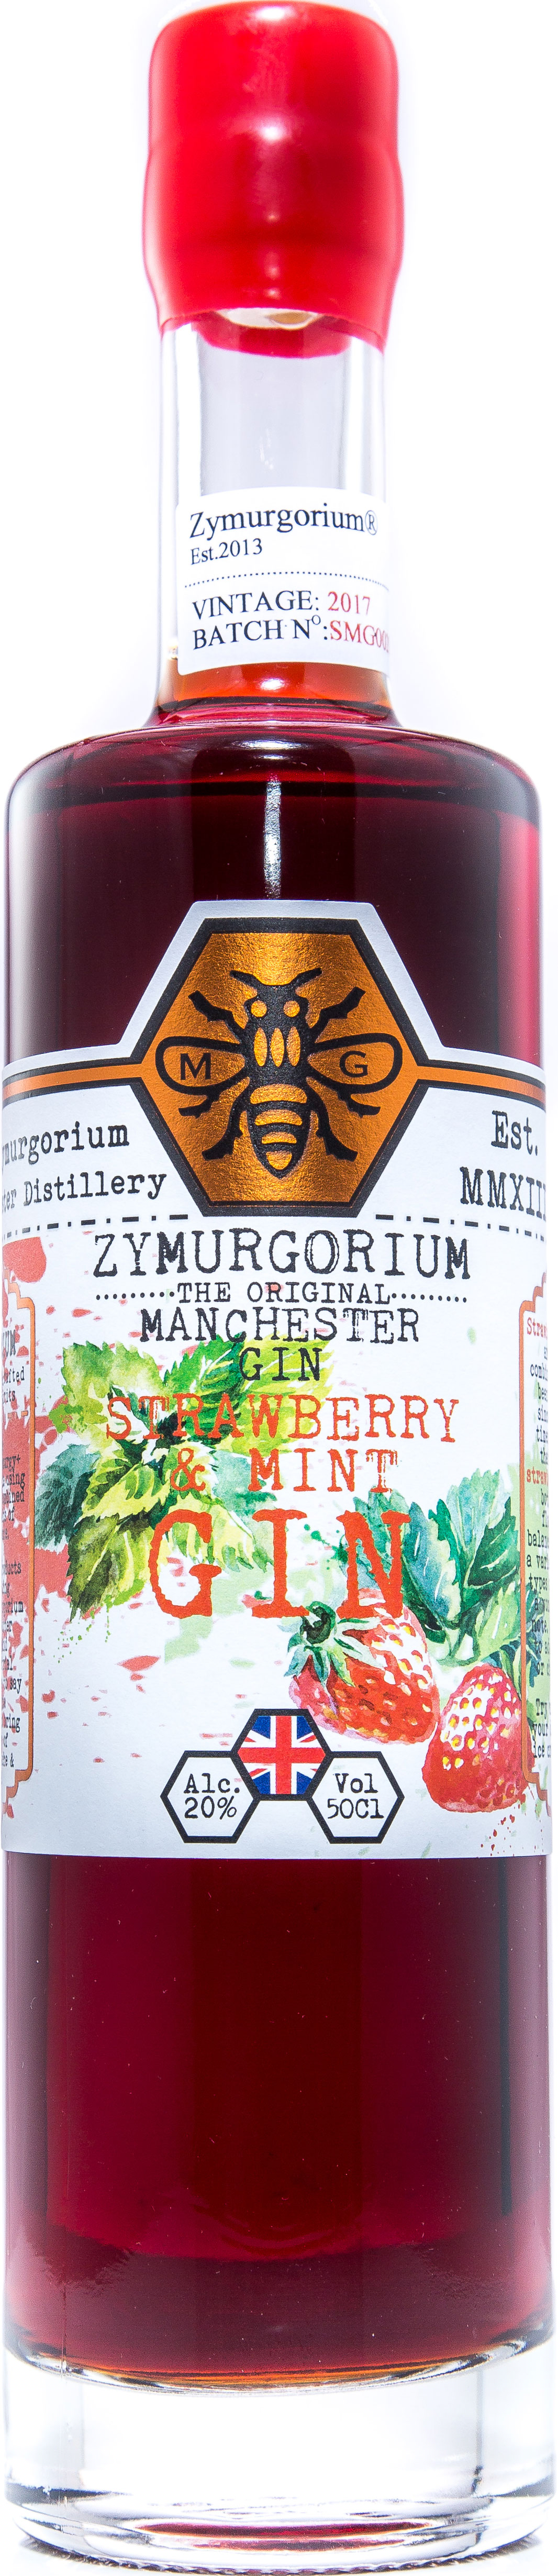 Zymurgorium - Strawberry & Mint Gin Liqueur 50cl Bottle